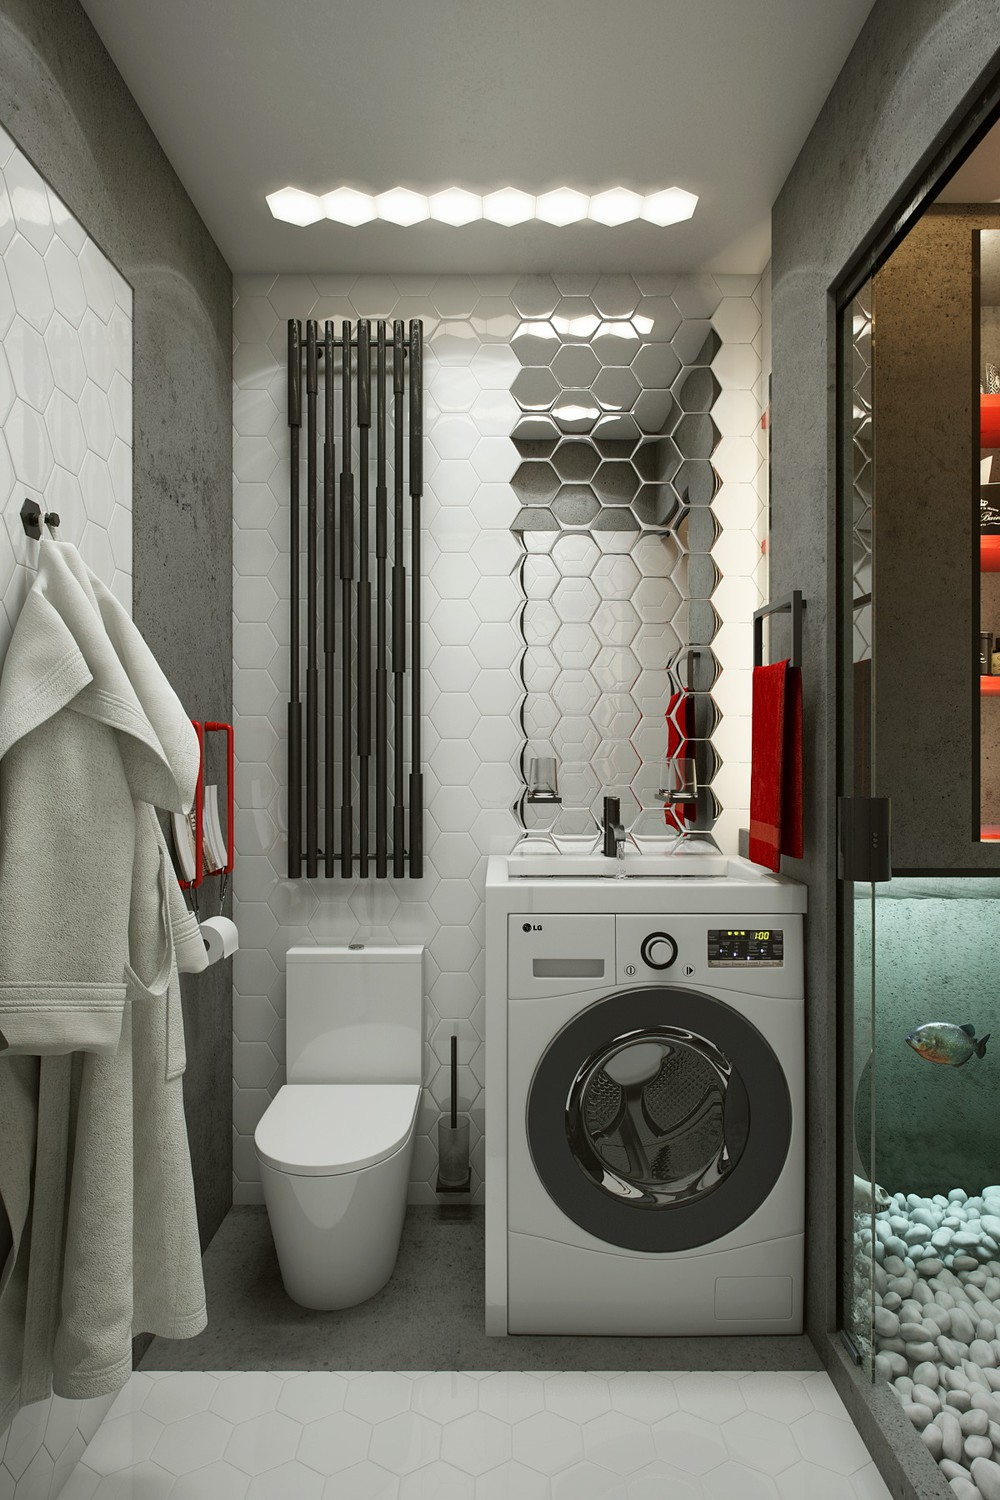 Micro home design super tiny apartment of 18 square meters for Amenagement petite salle de bain avec machine a laver